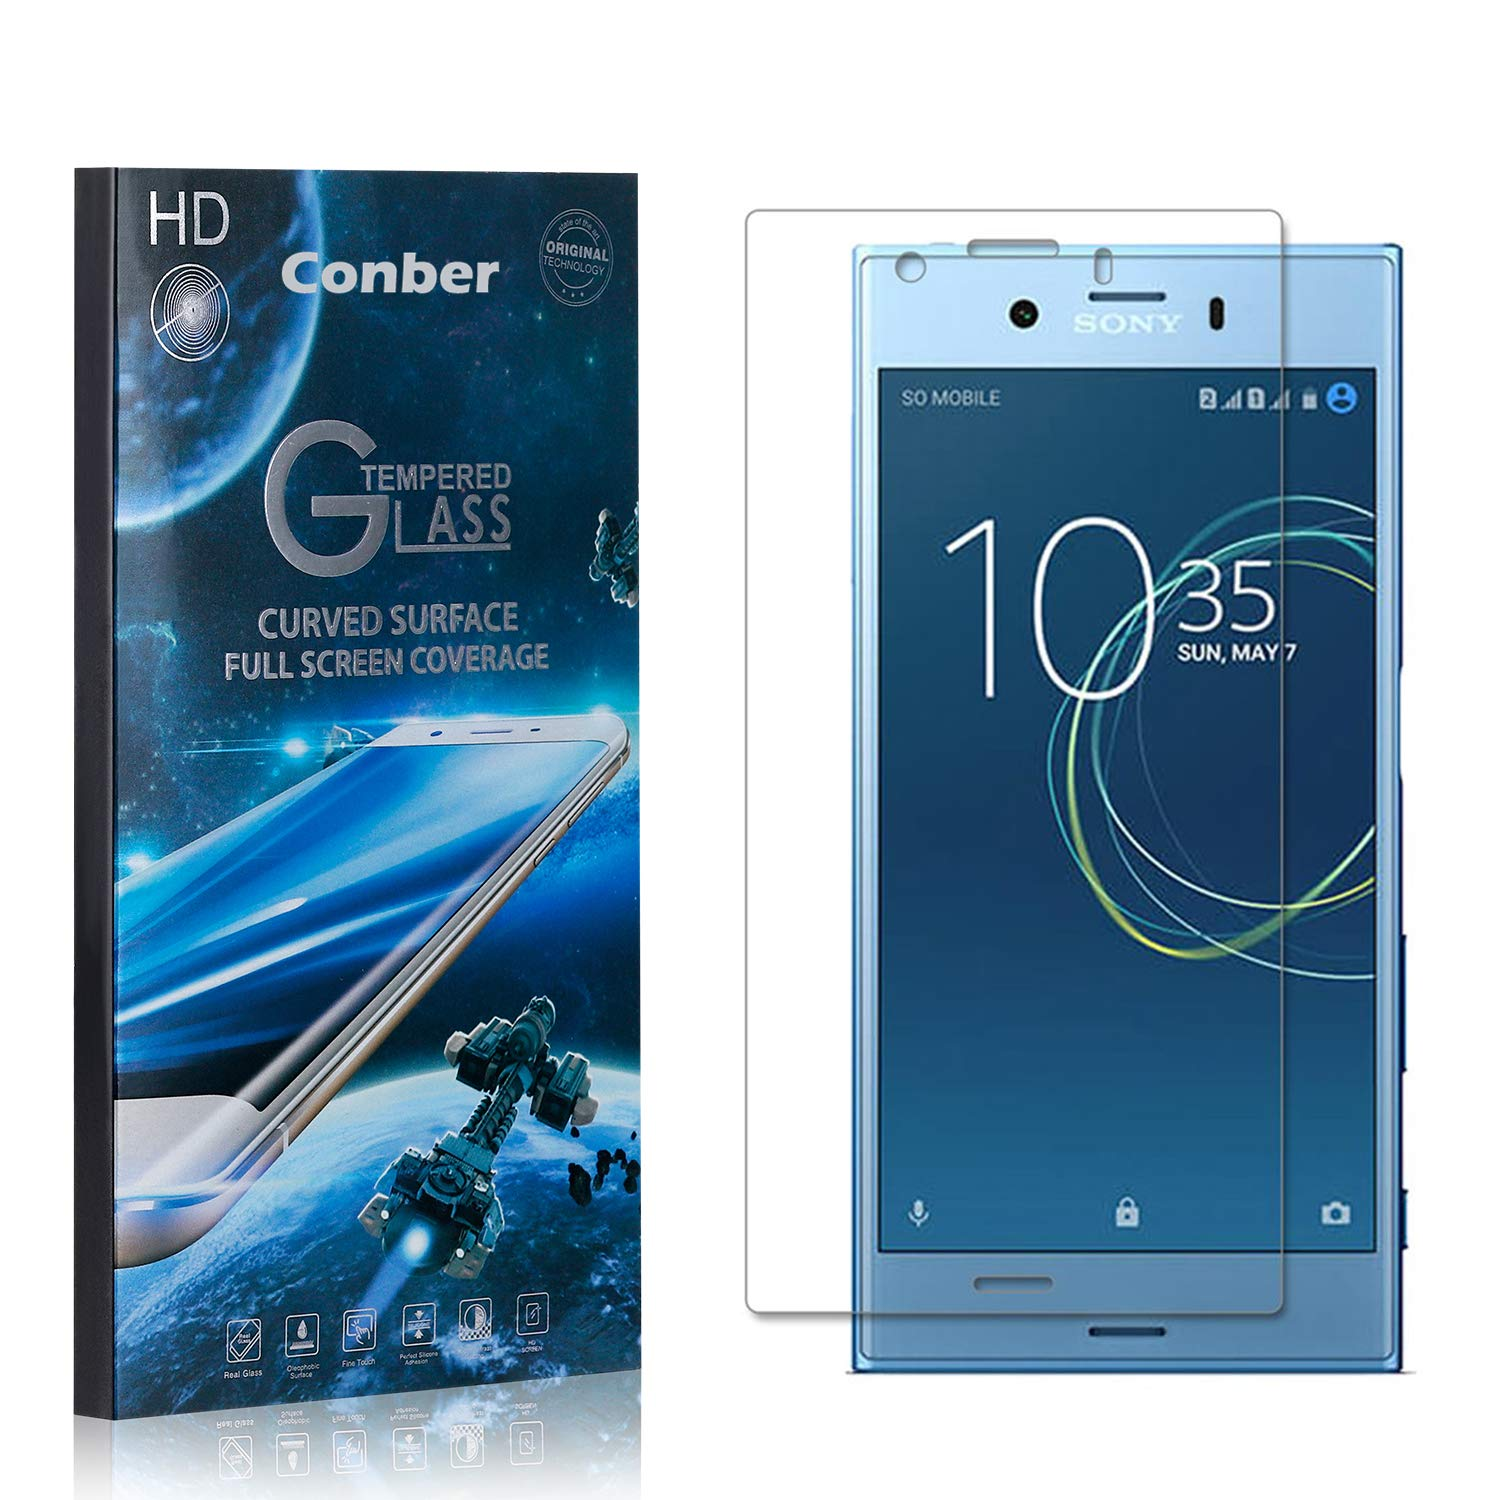 Conber 1 Pack Screen Protector Al sold out. for Compact S XZ1 Sony Today's only Xperia